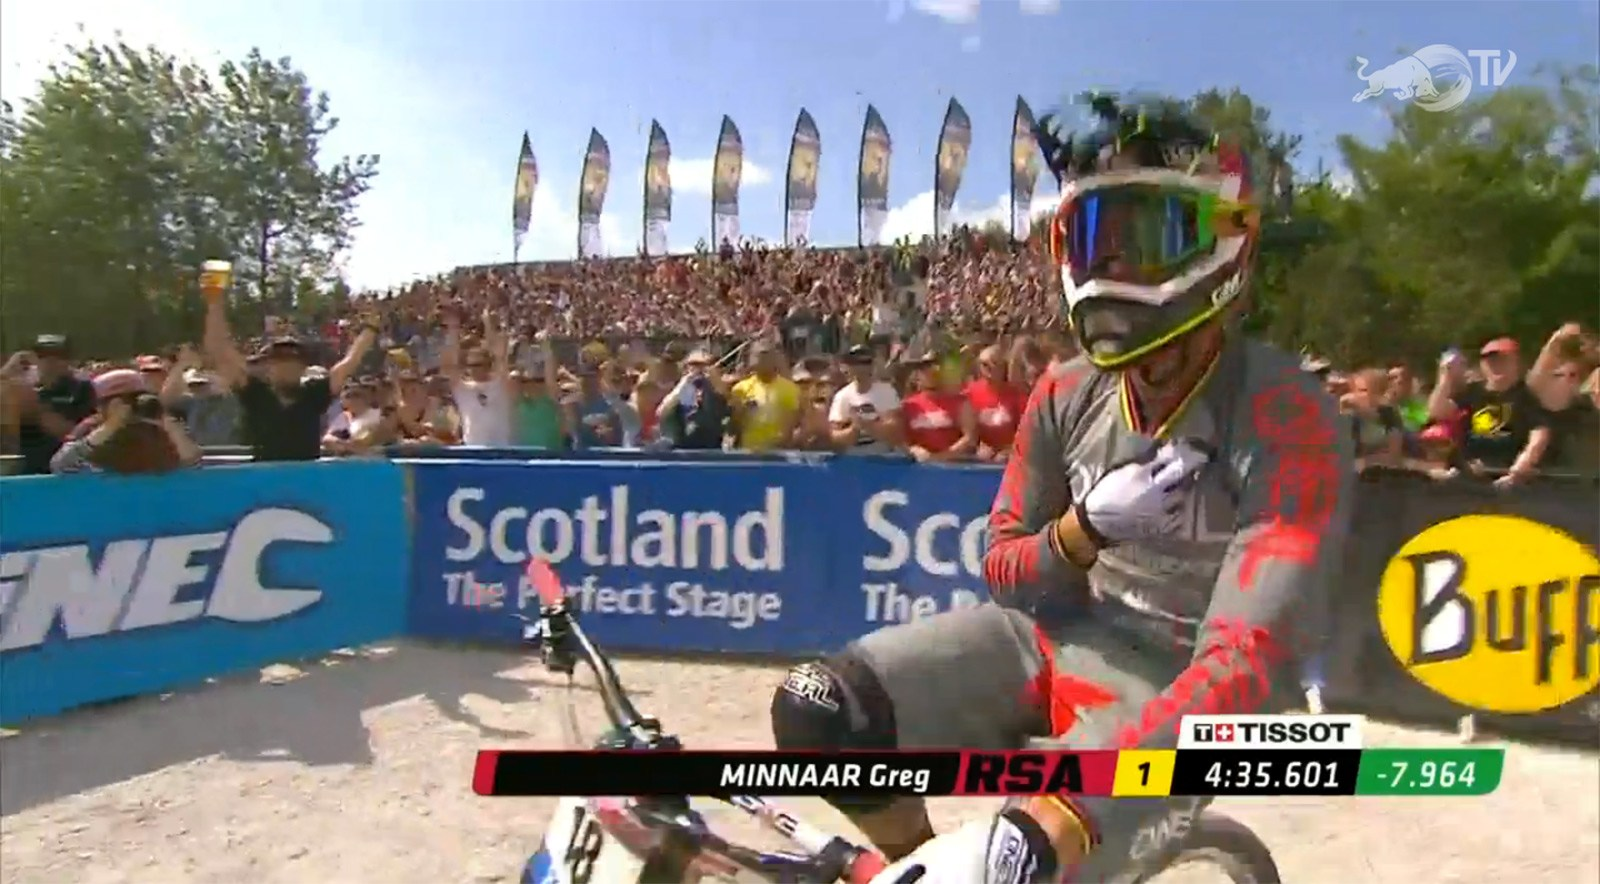 Greg Minnaar crossed the line with a huge gap, after starting way back in the field.